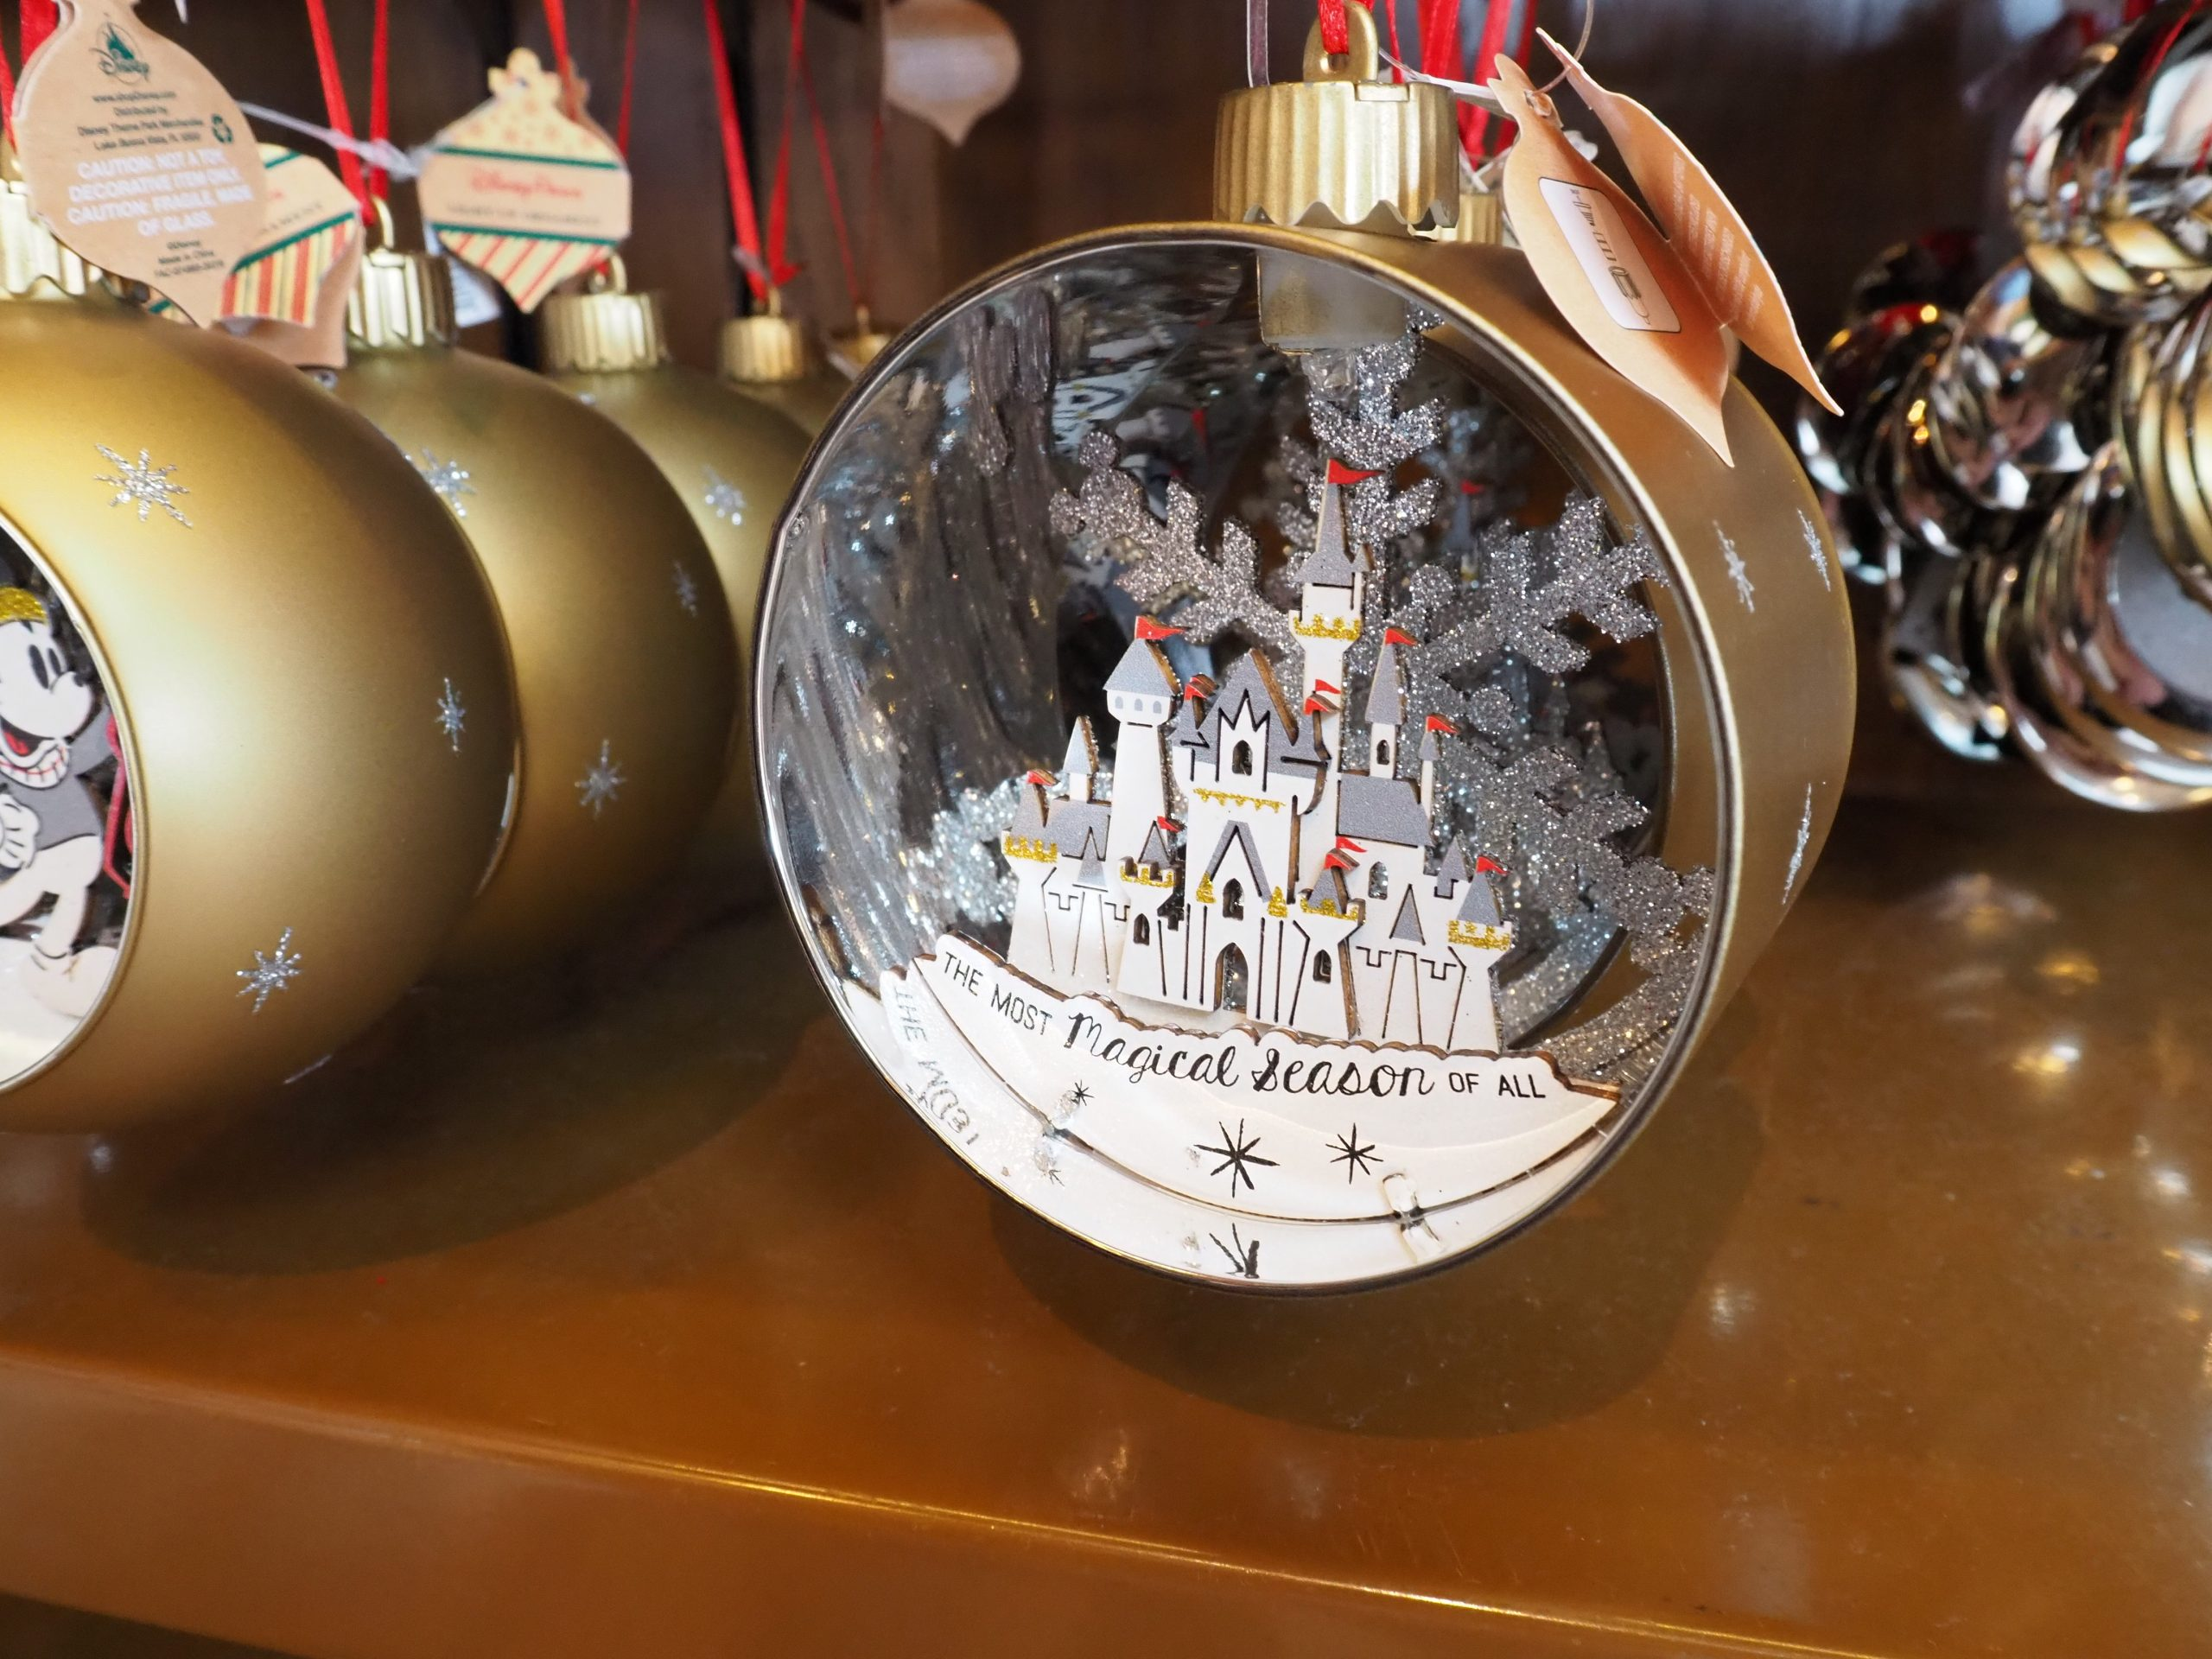 Things to do at Festival of Holidays at Disney World